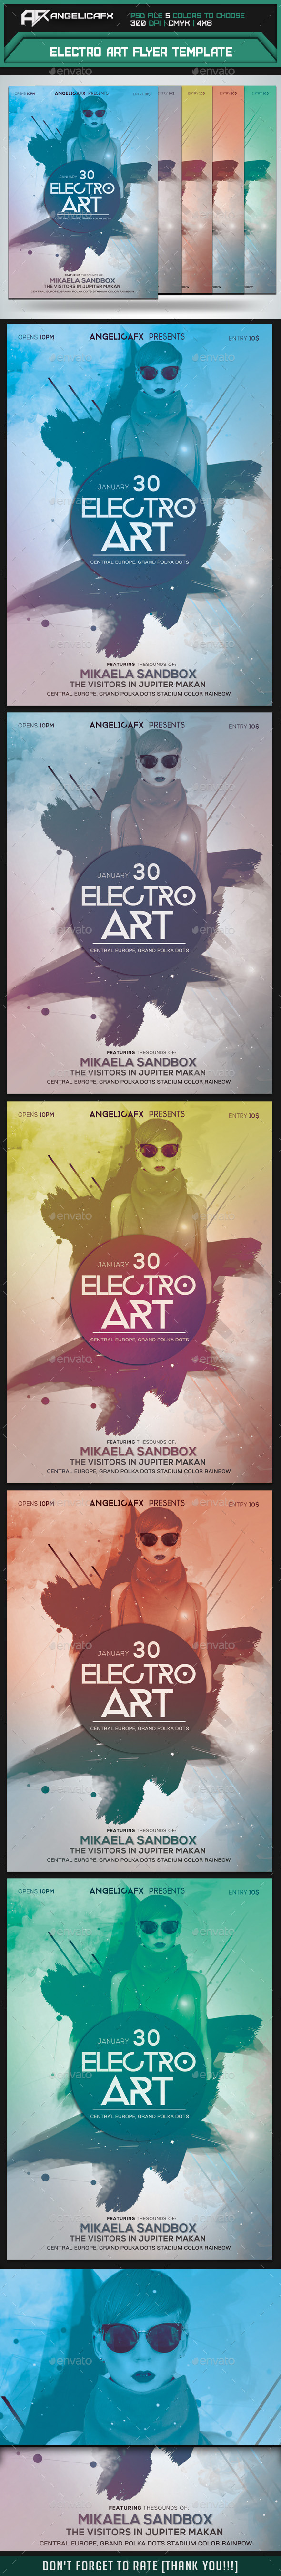 GraphicRiver Electro Art Flyer Template 9411856